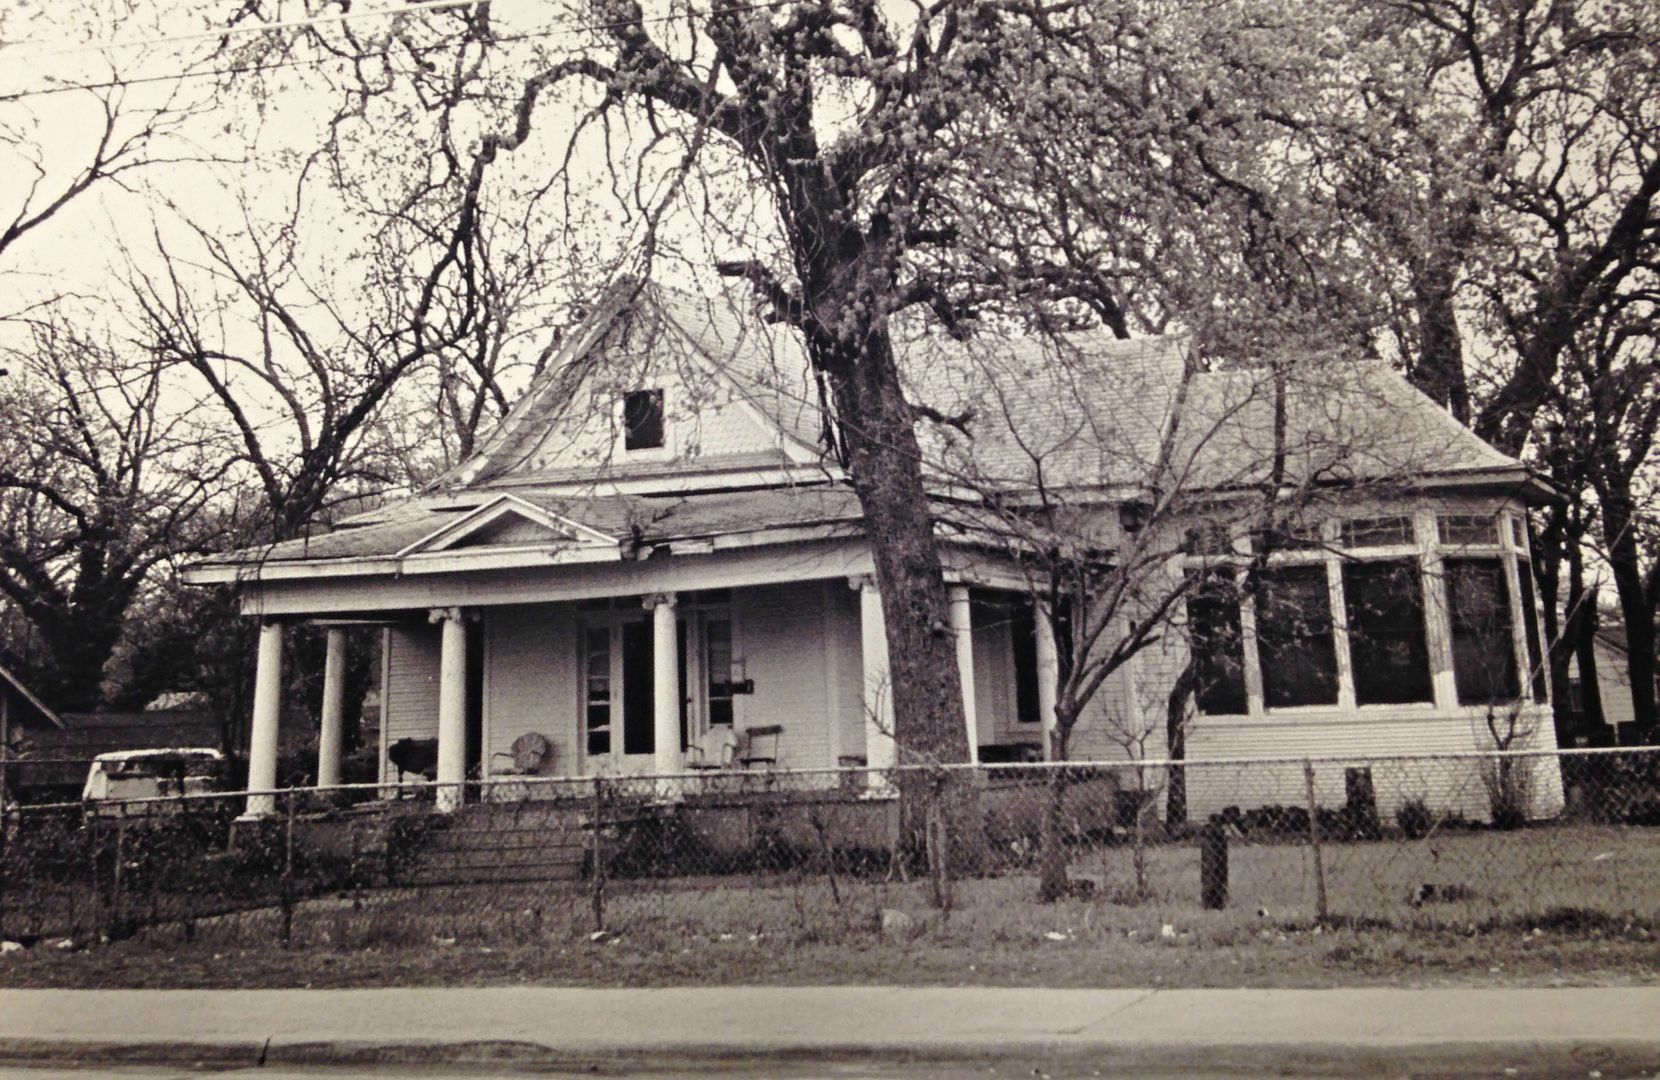 An undated photo of 2426 Pine St. in South Dallas, which no longer exists except as a towering of charred lumber